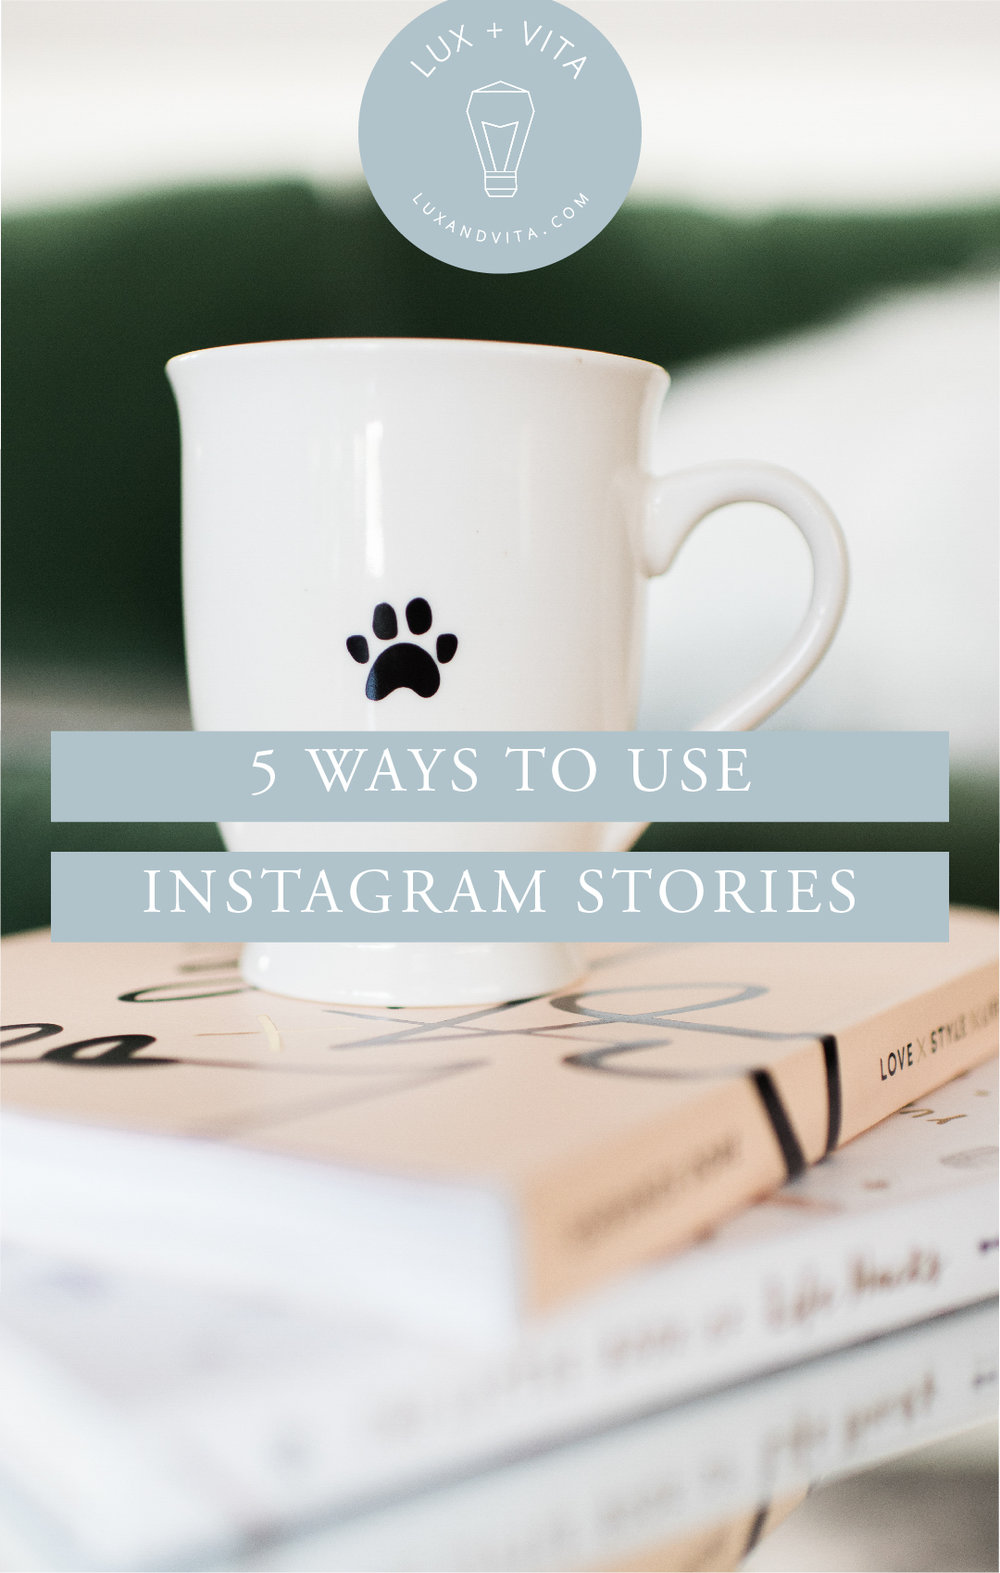 Blog-ways-to-use-instagram-stories_Pinterest-Tall.jpg